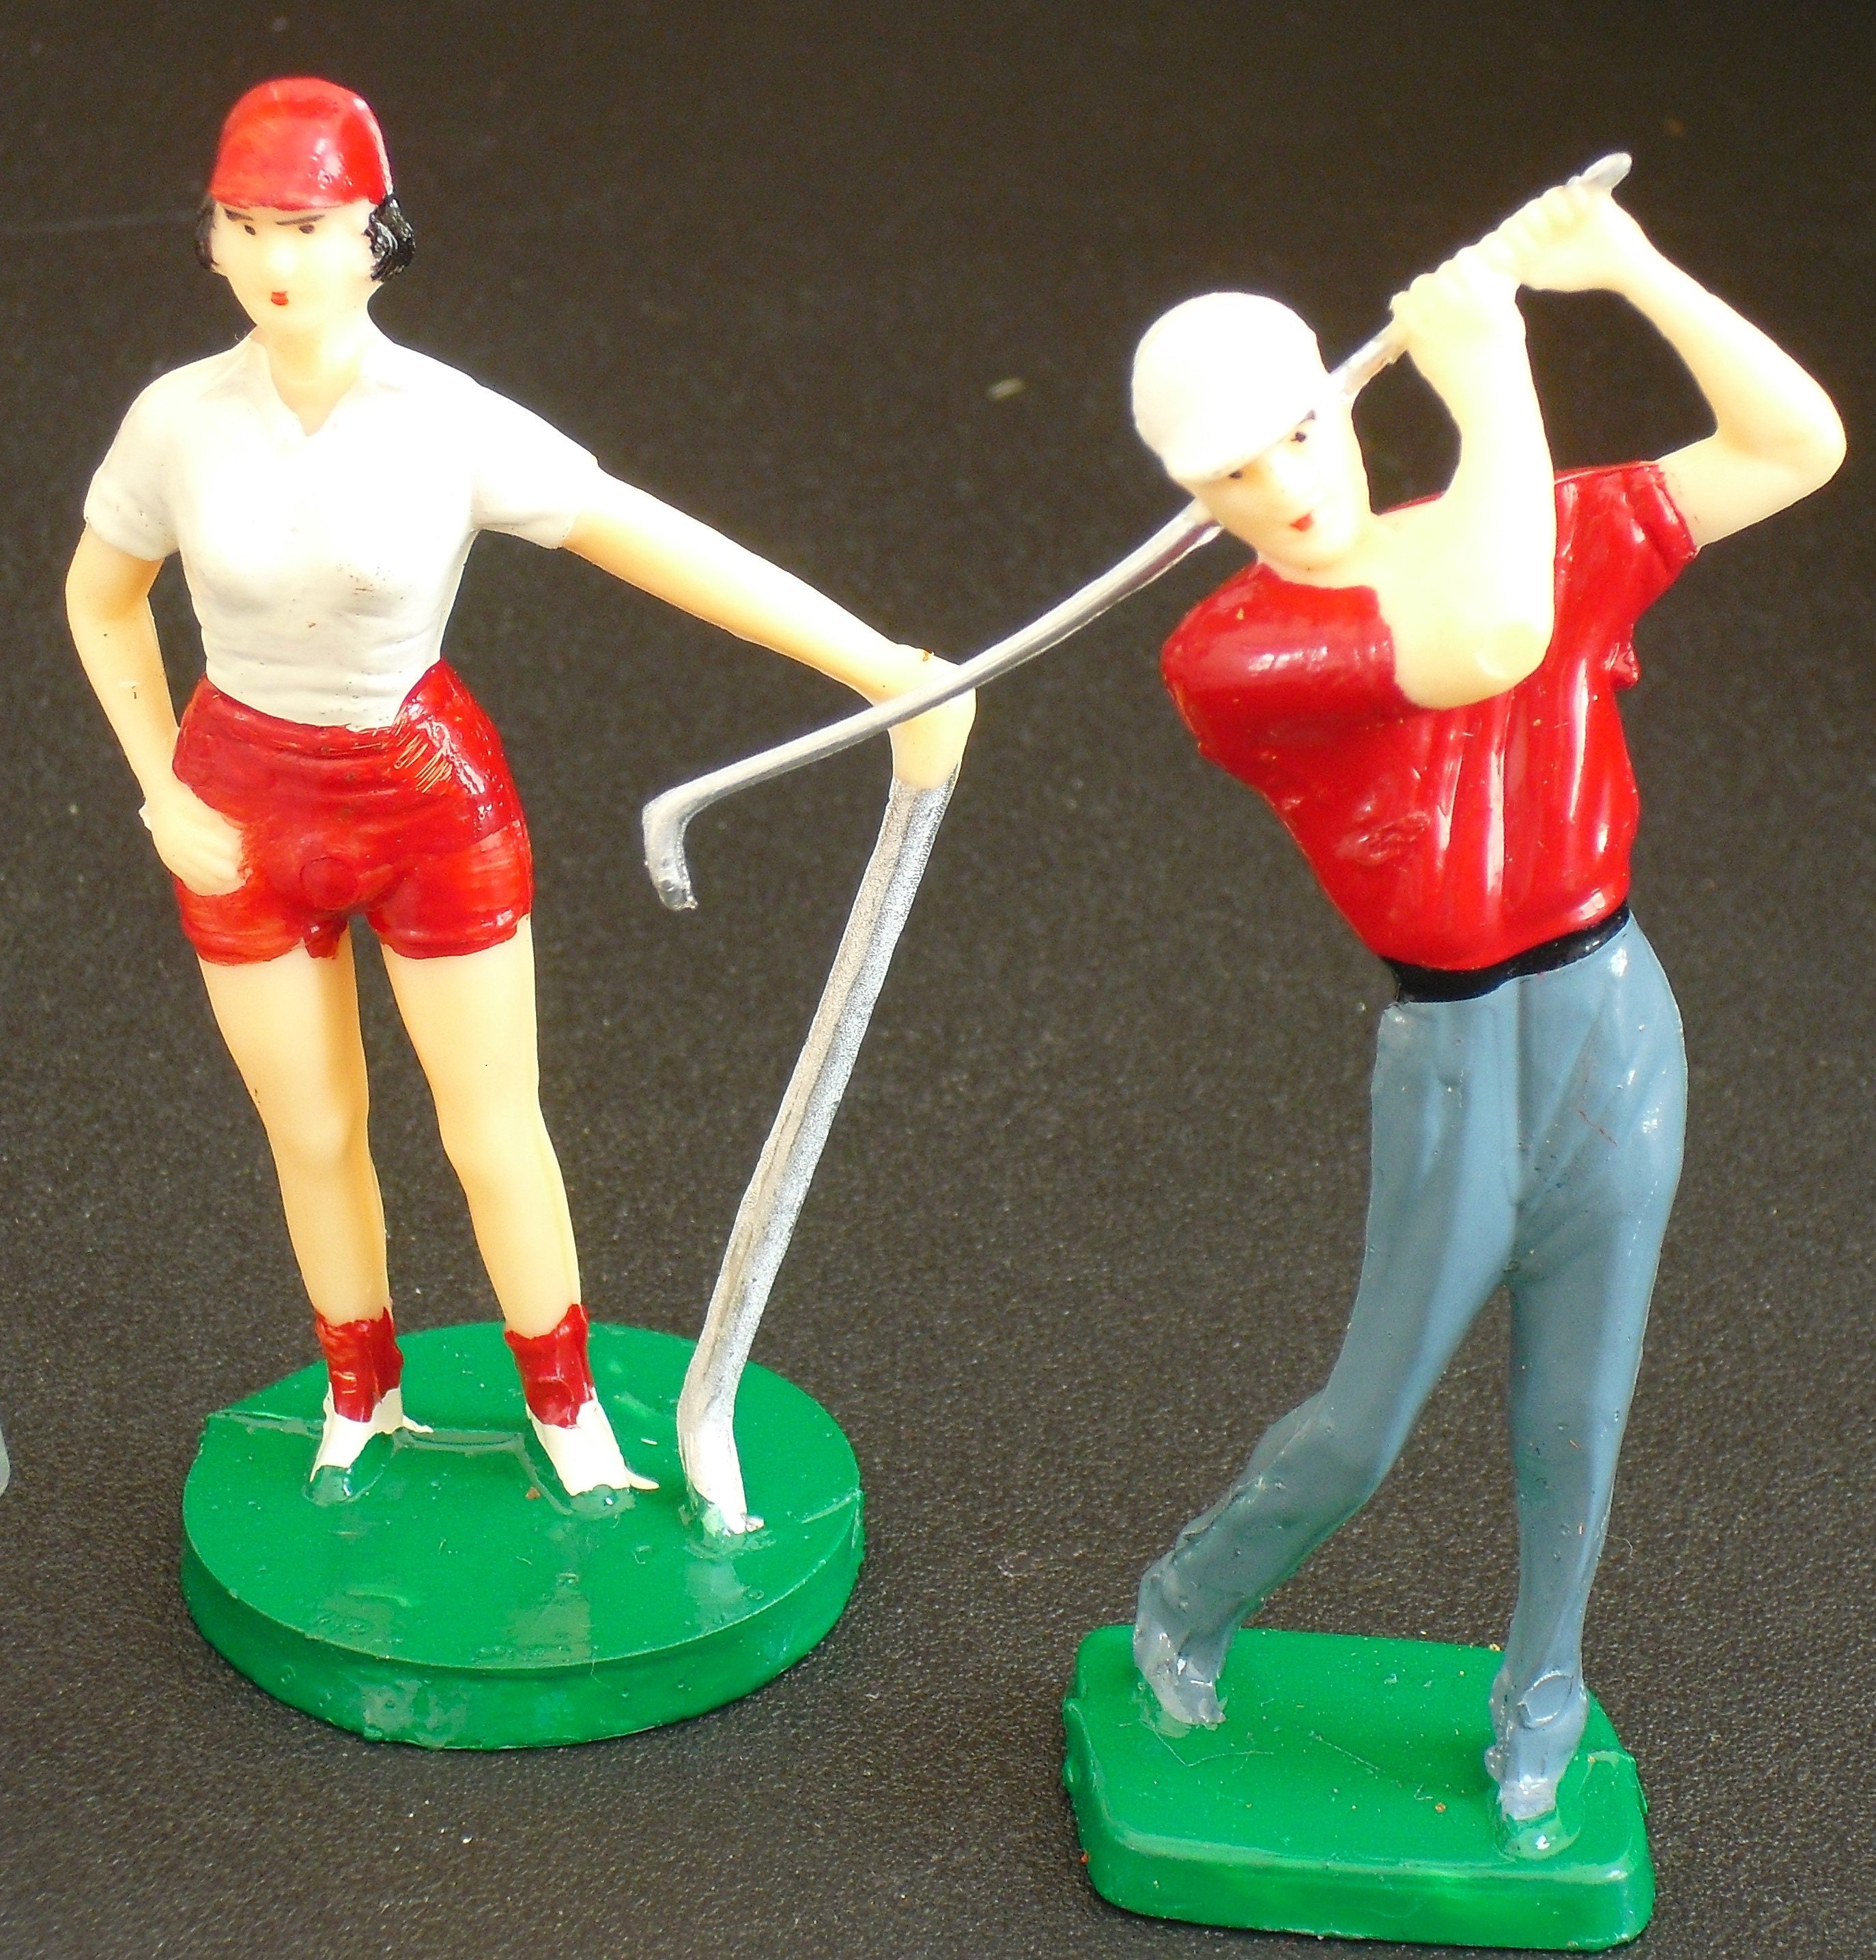 Cake Decorating Golf Figures : Vintage Golf Cake Toppers Decorations 4 Male Golfers 1